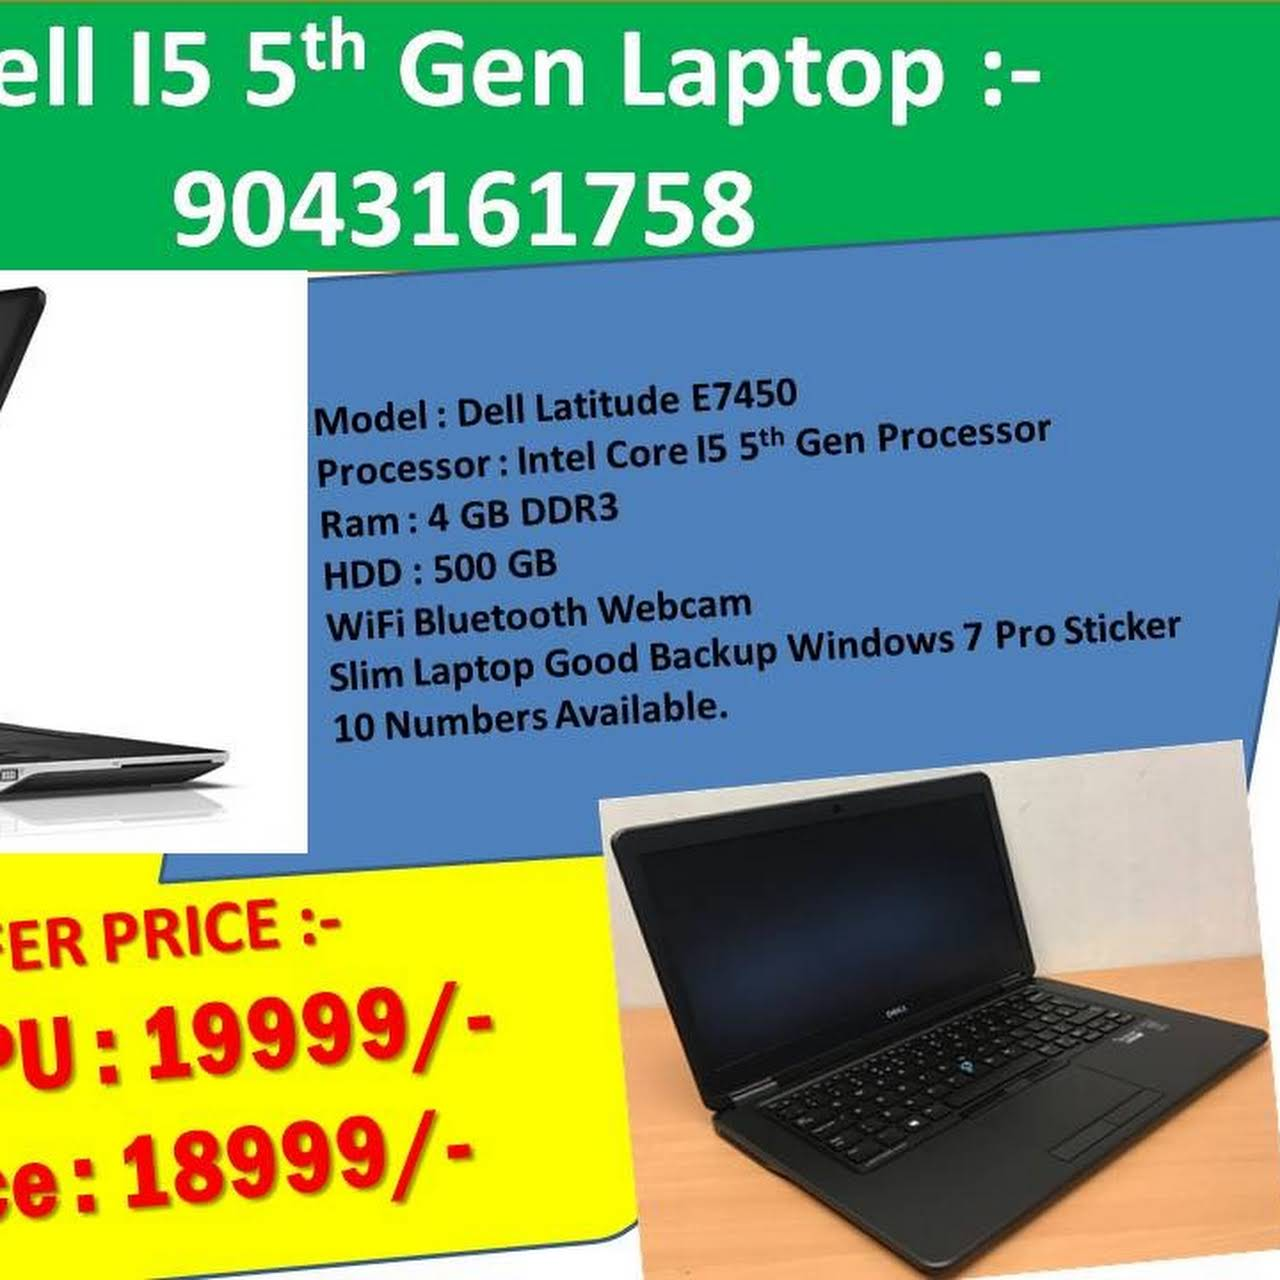 V Tech Systems - Laptop Store in Chennai